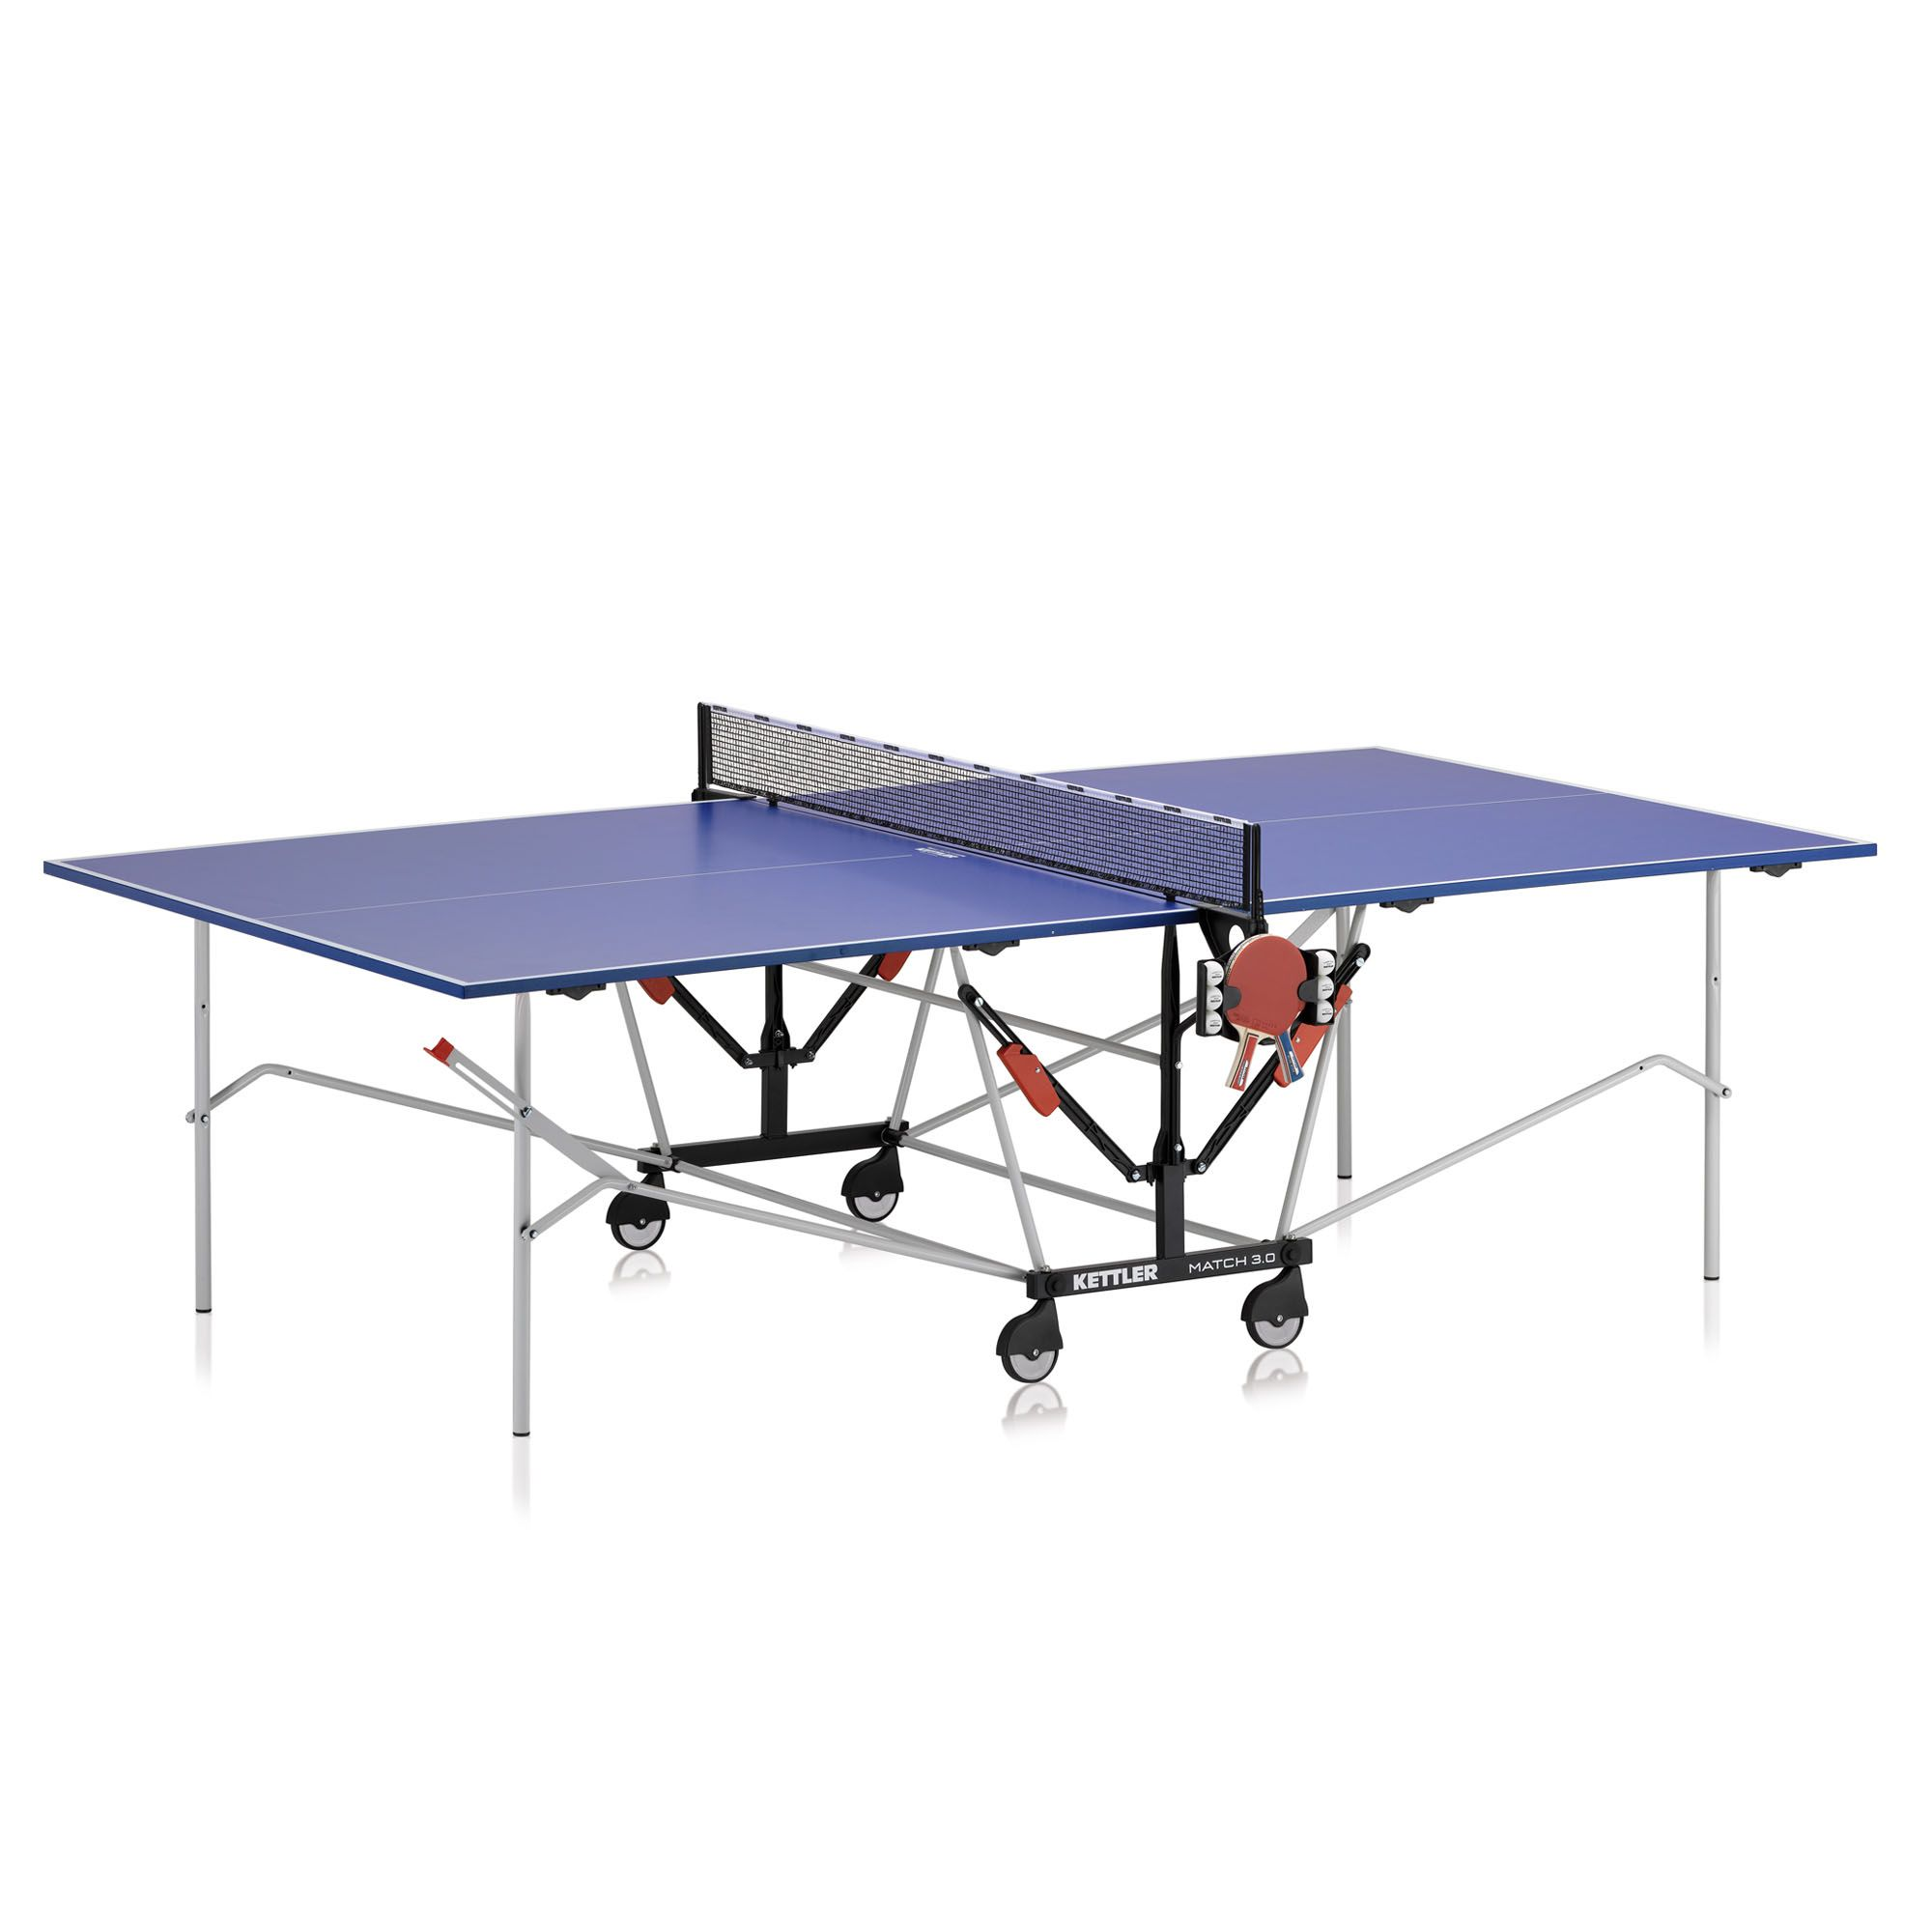 Kettler match 3 0 indoor table tennis table for Table kettler